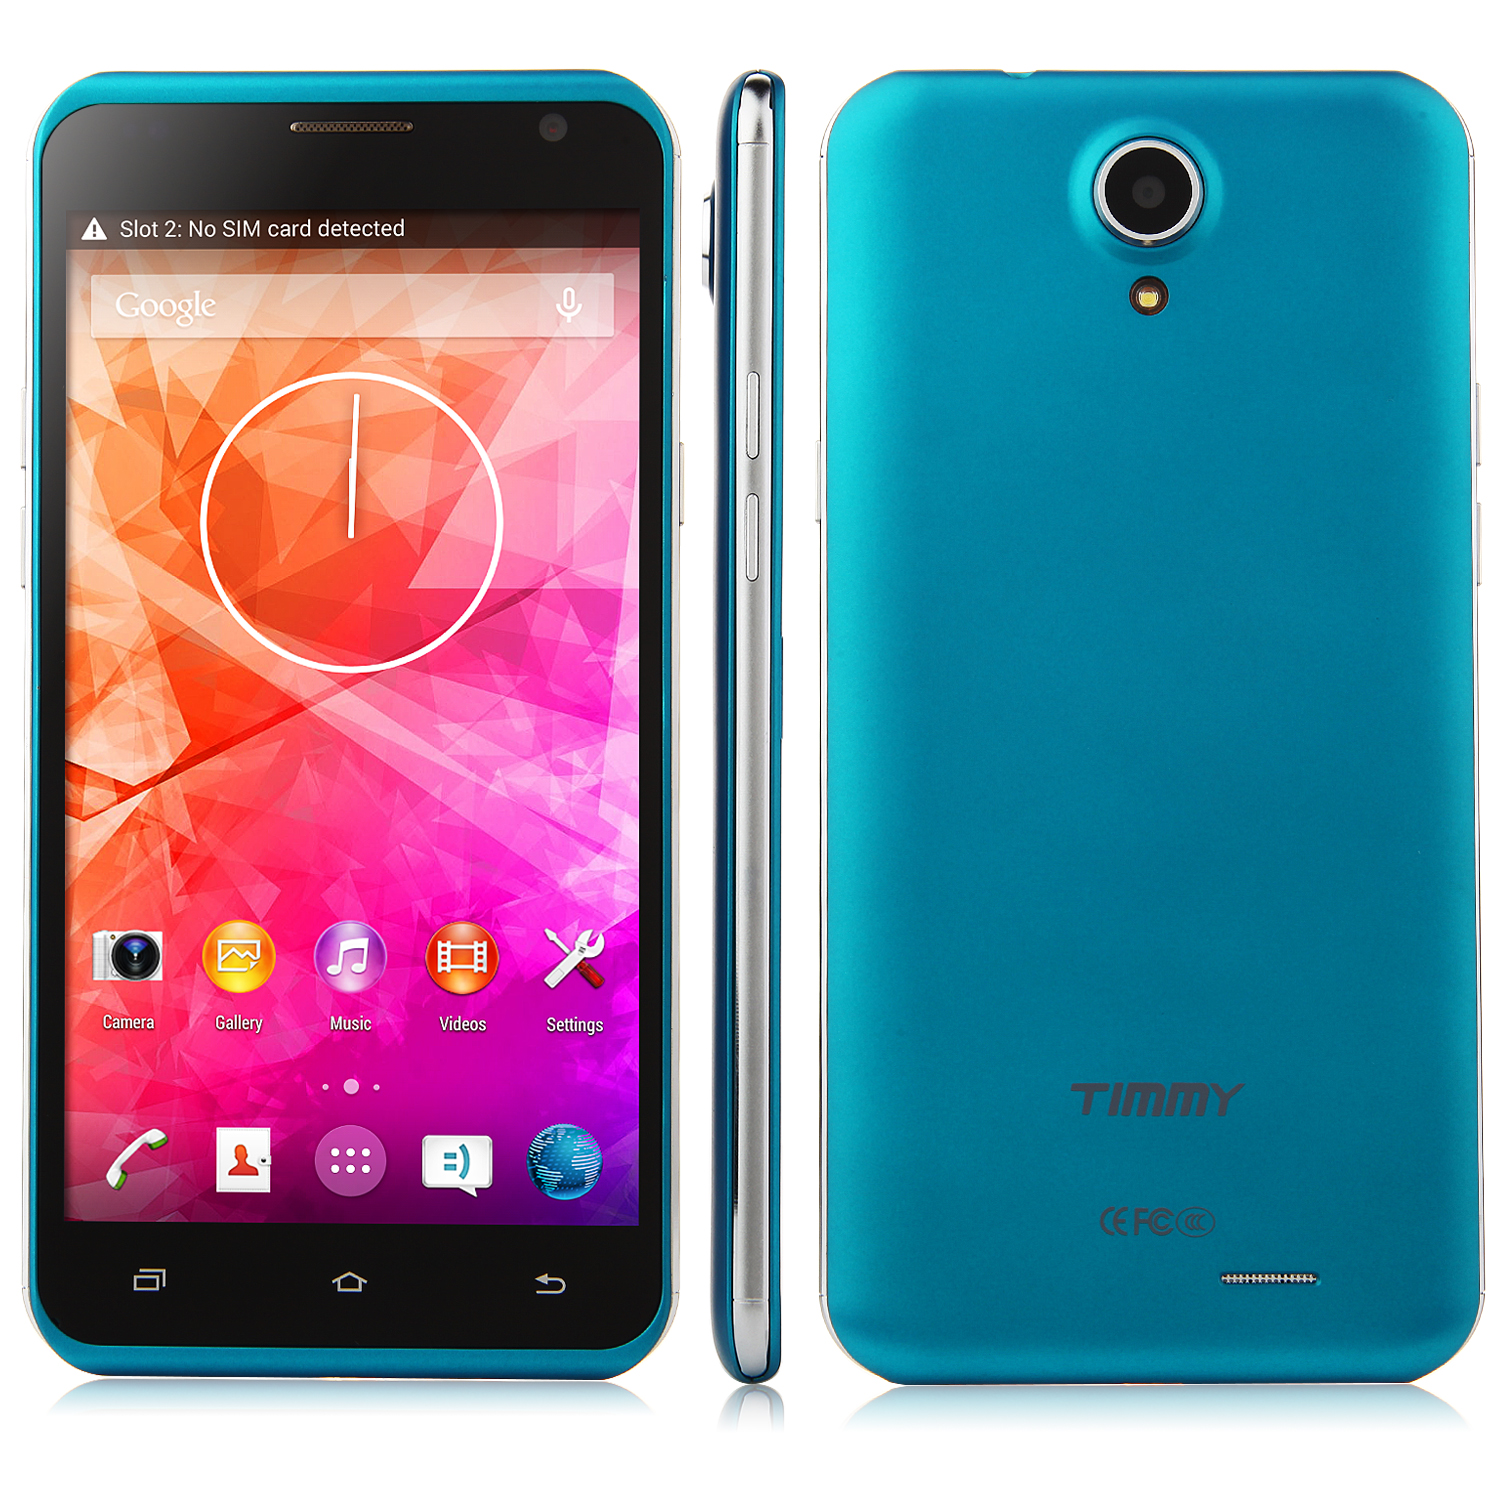 TIMMY E86 Smartphone Android 4.4 MTK6582 Quad Core 5.5 Inch HD Screen 1GB 8GB Blue